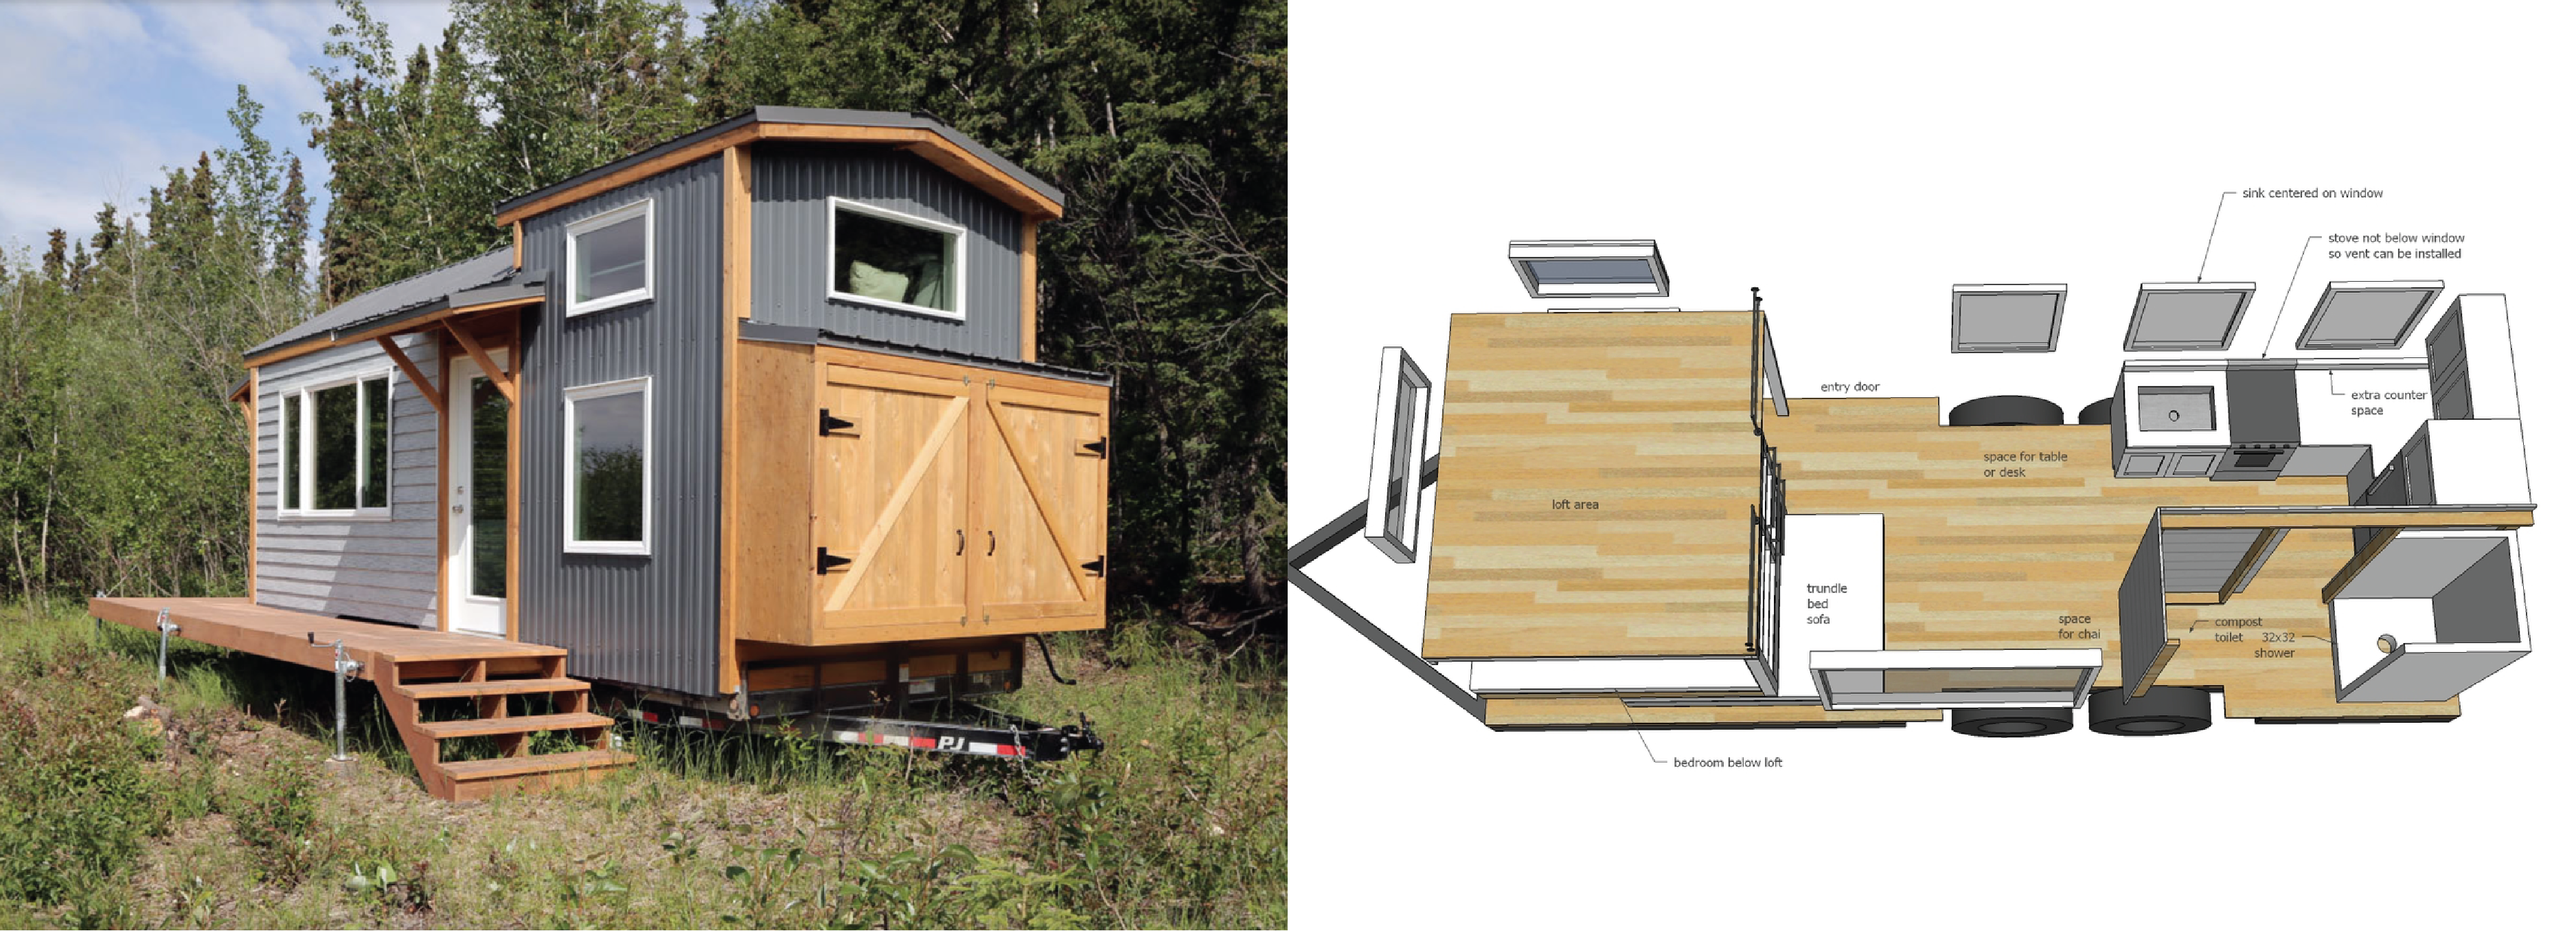 Plans and completed Quartz tiny house from Ana White